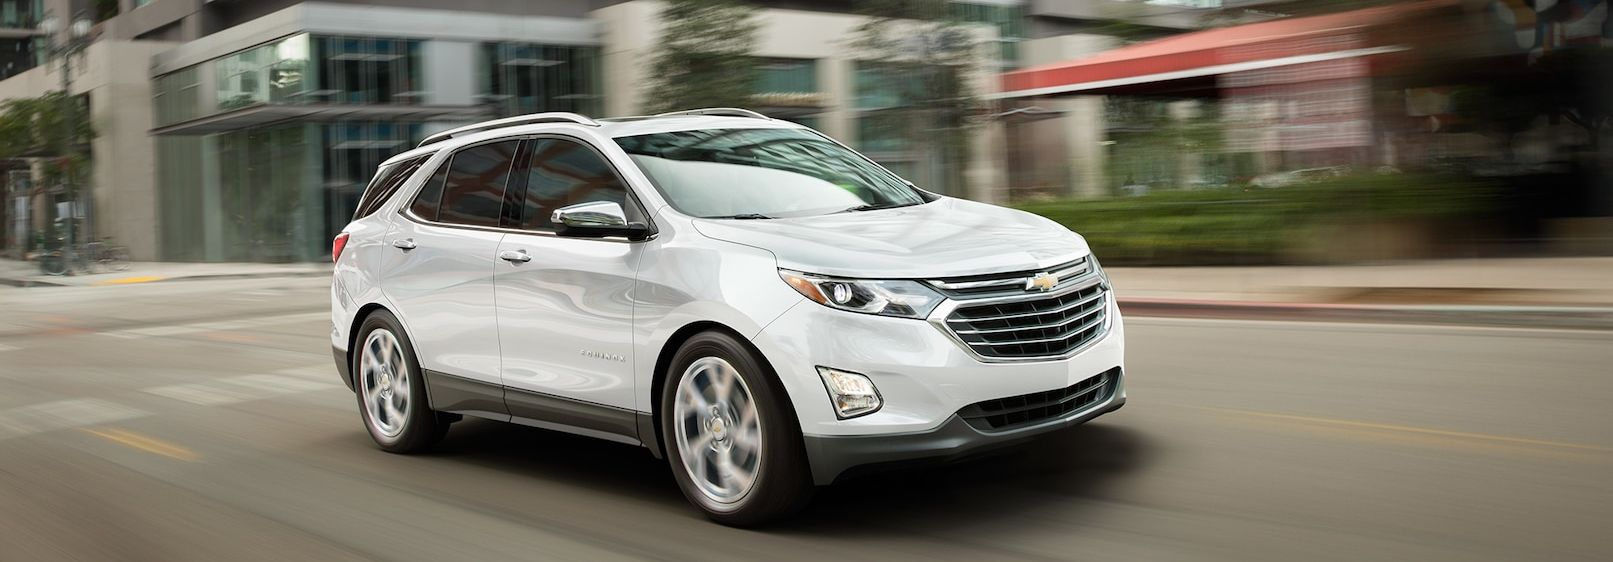 2019 Chevrolet Equinox Financing near Brookings, SD